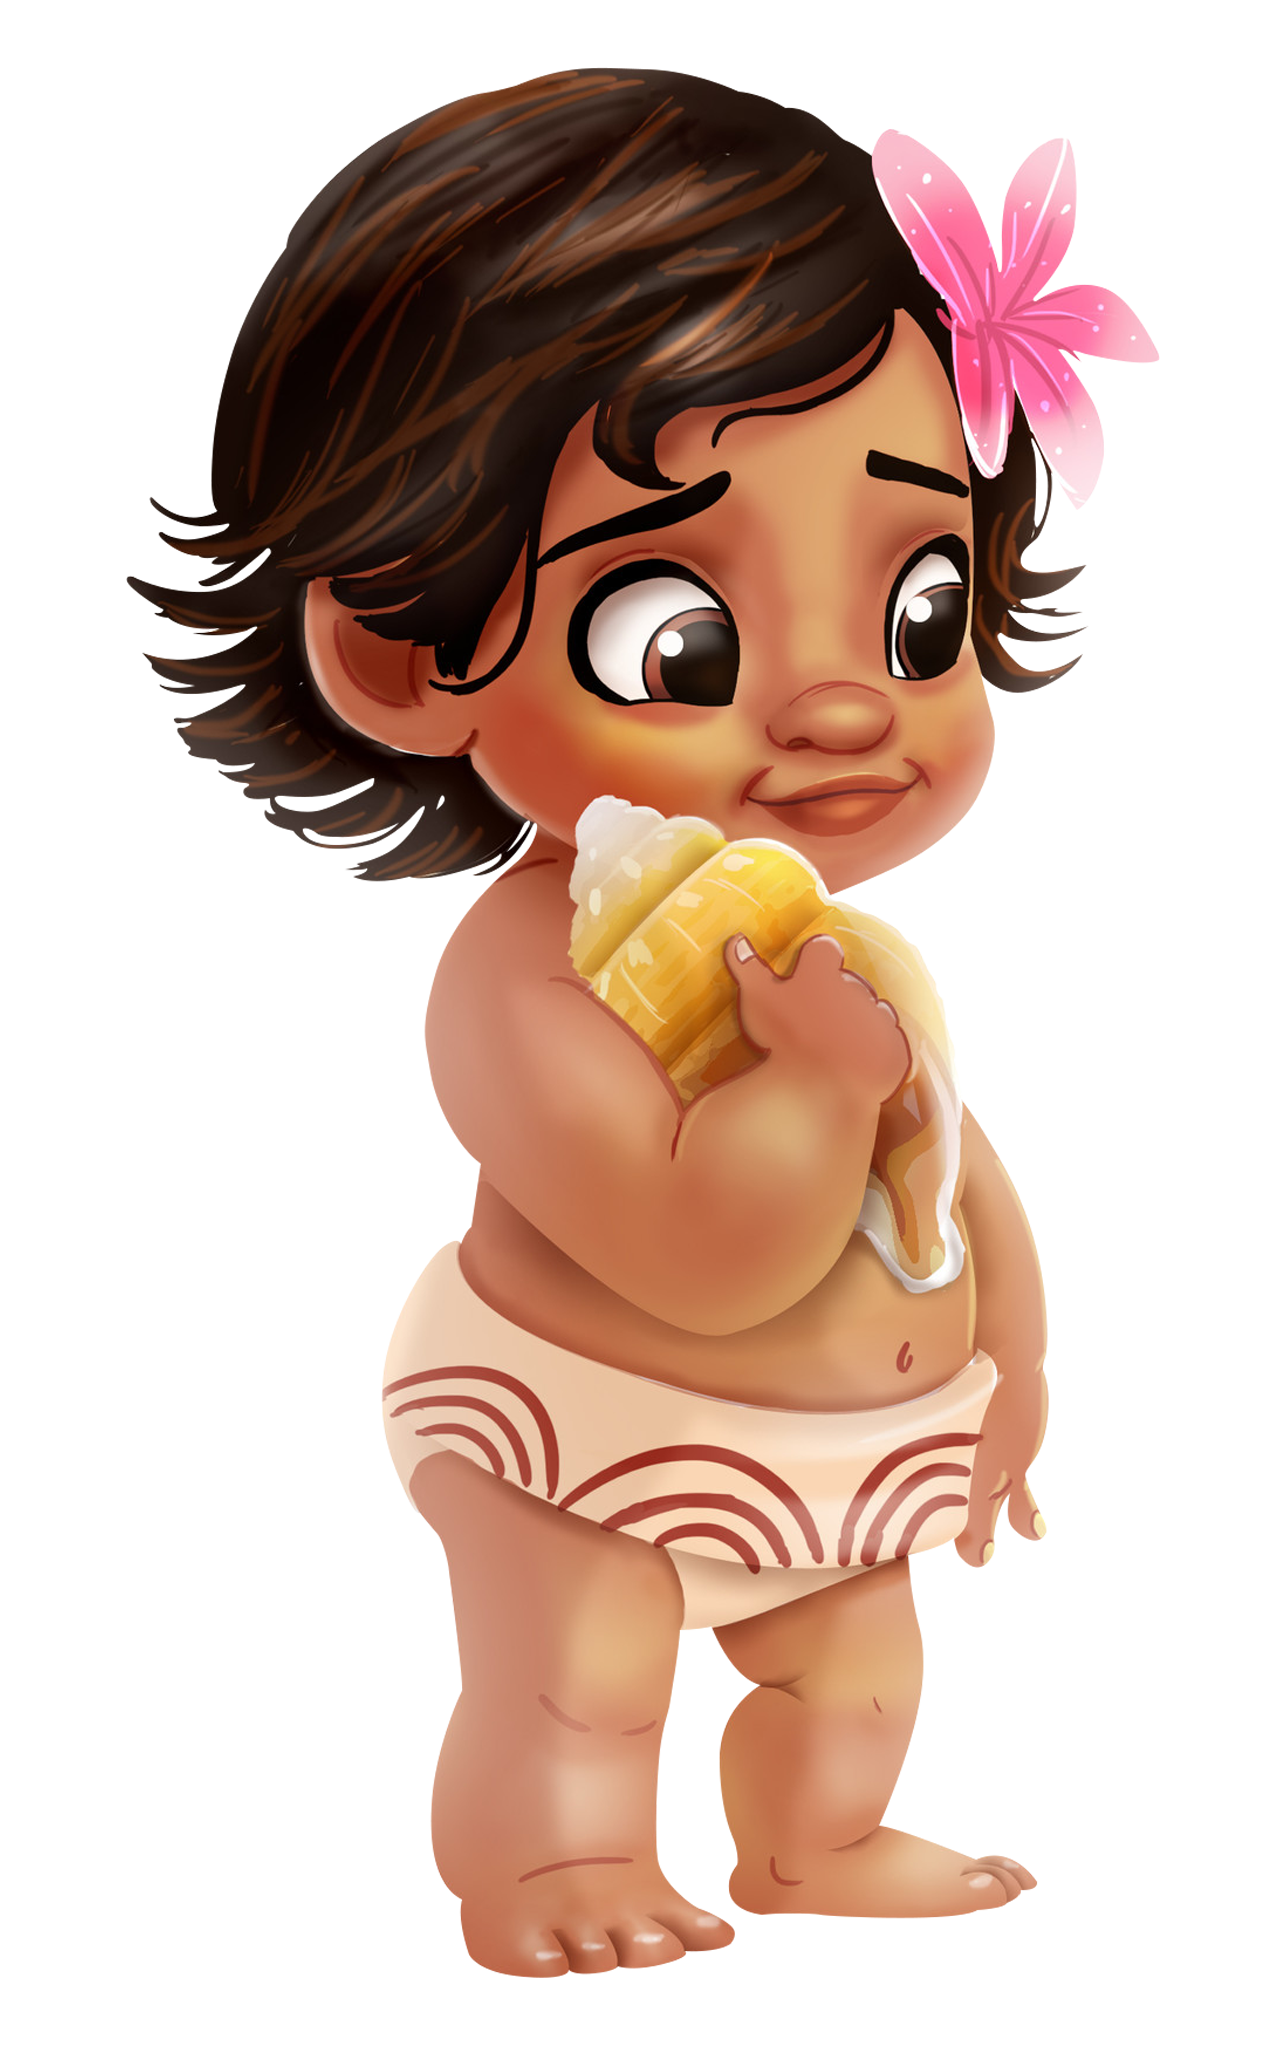 Baby png images free. Infant clipart offspring